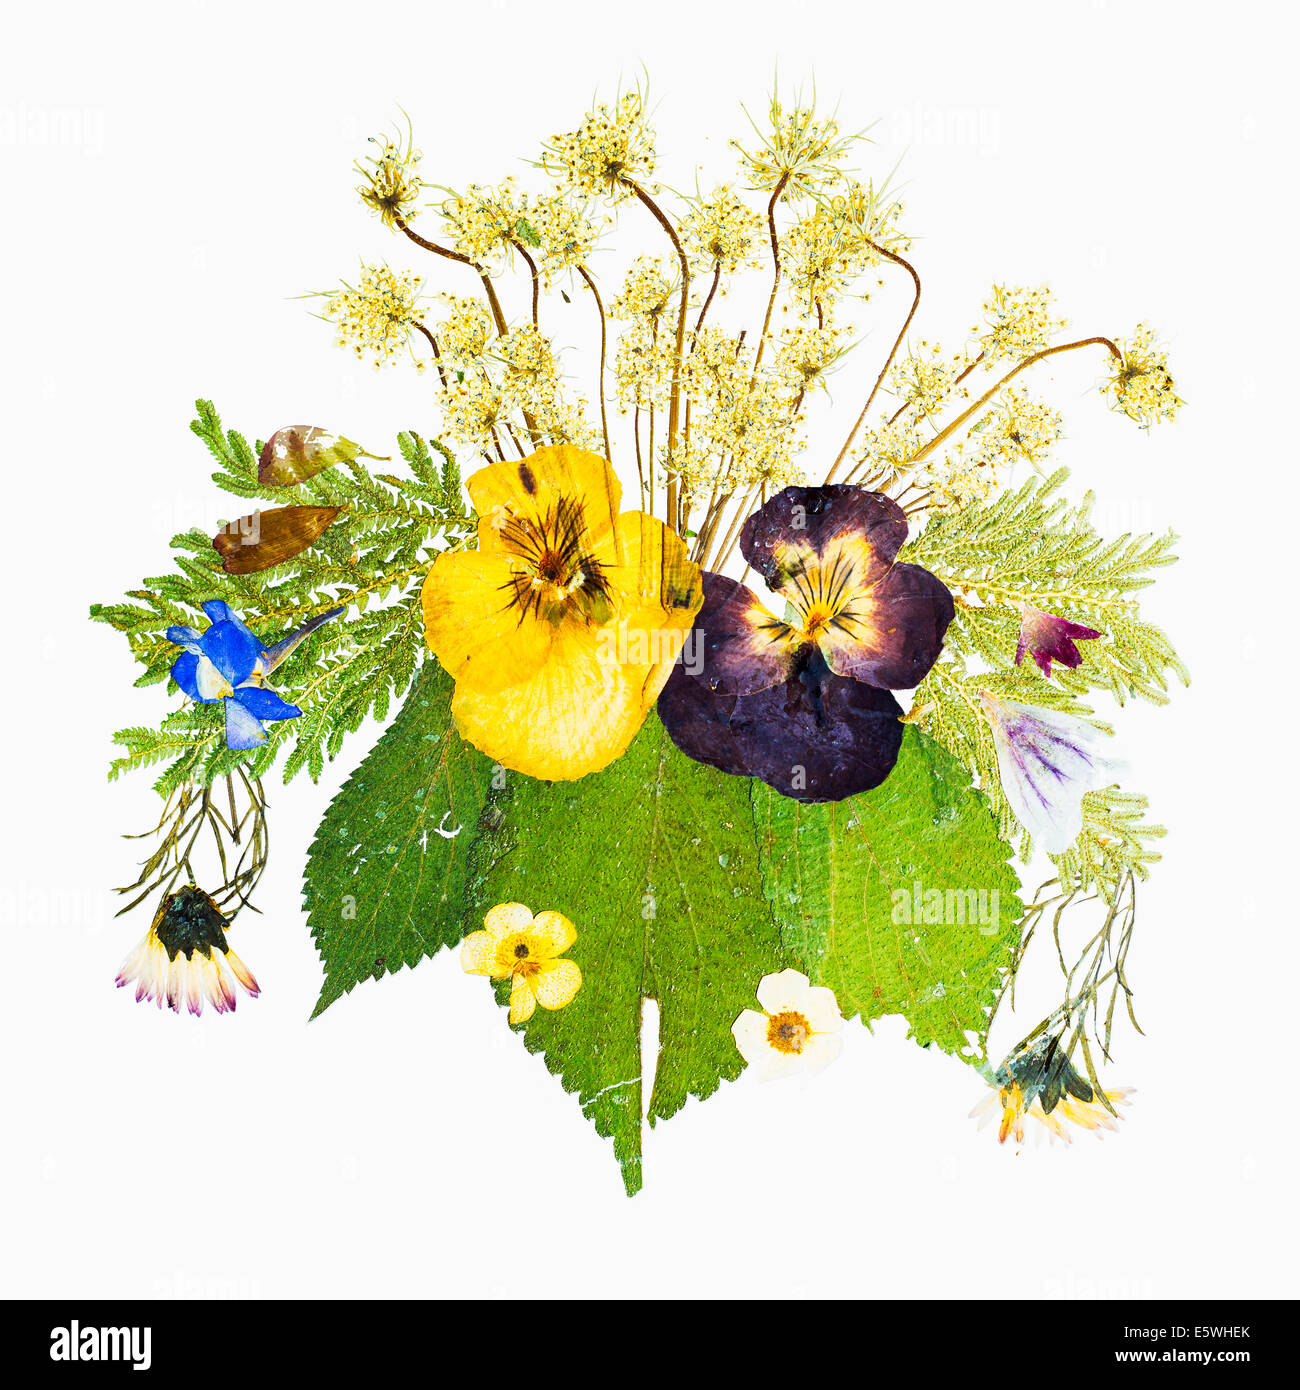 Dried pressed flowers - Stock Image